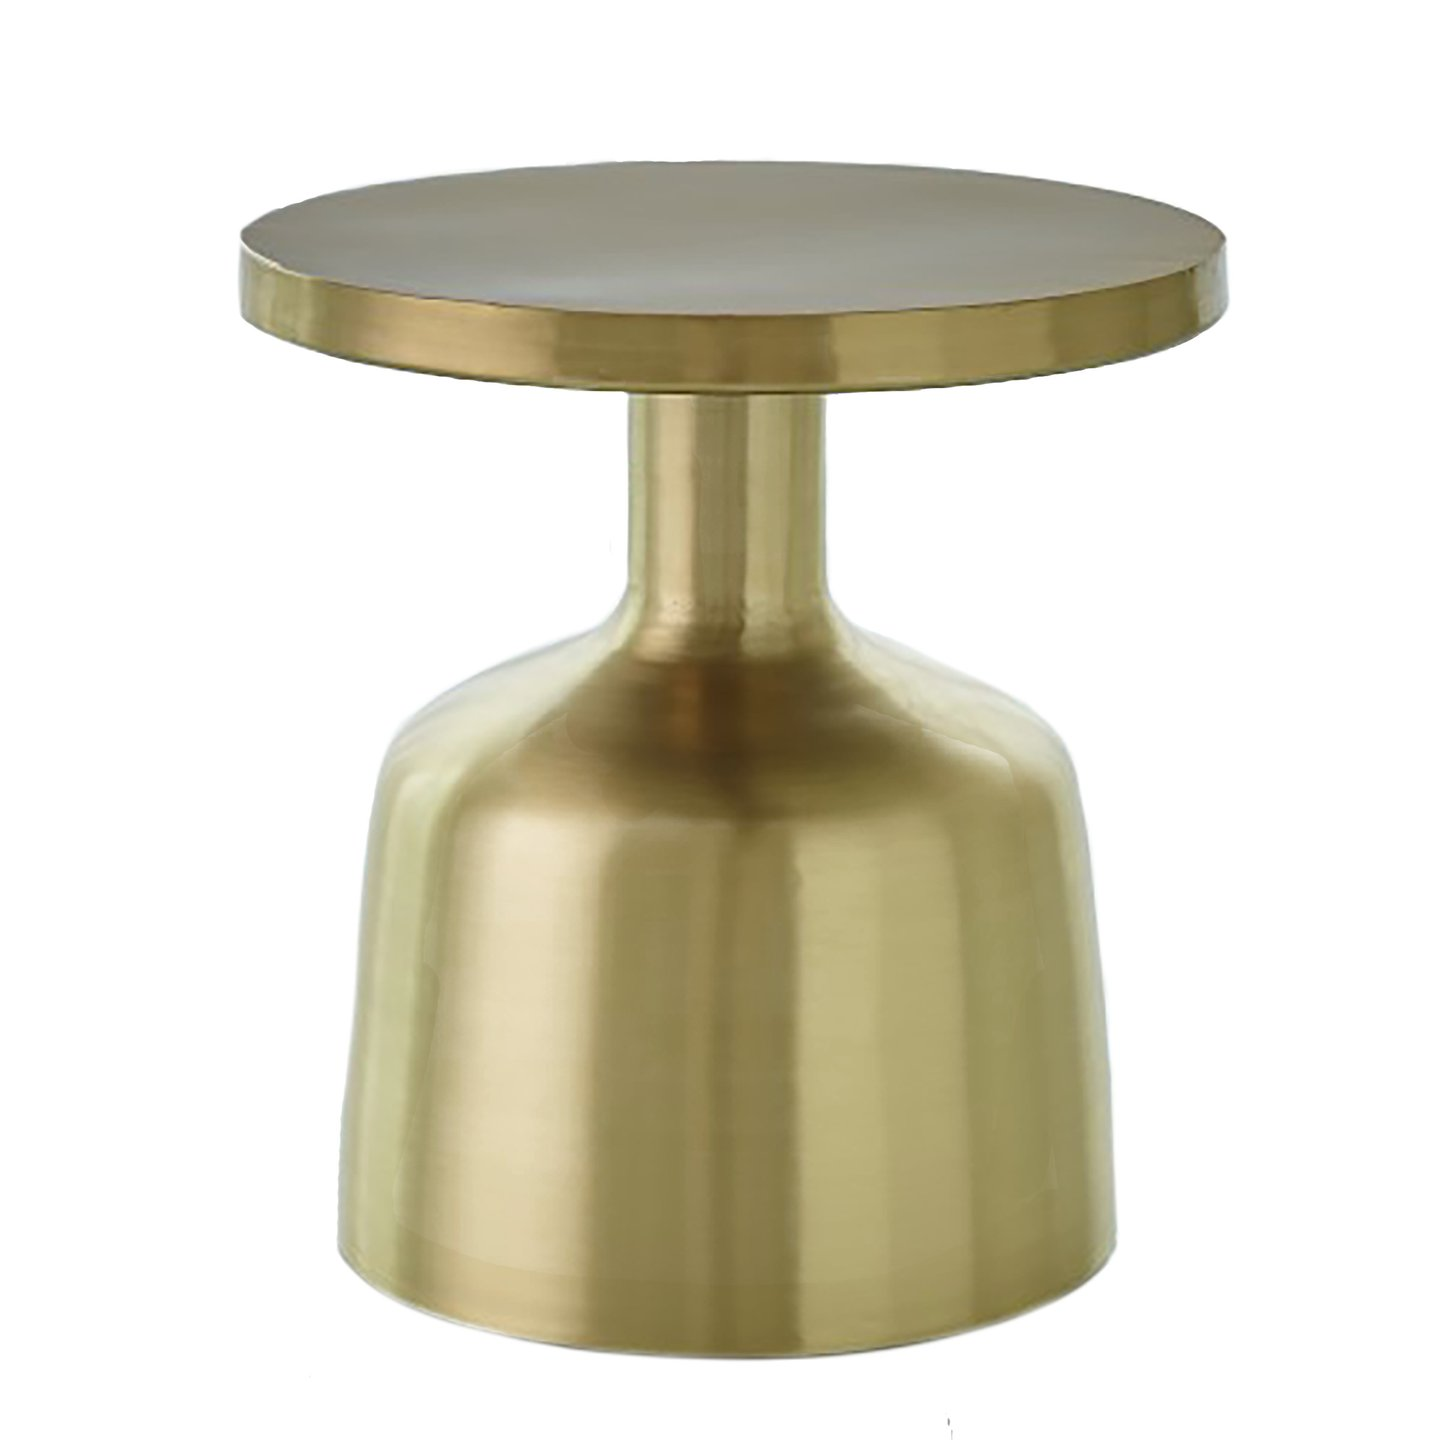 studio neutra accent table satin brass studioatablebrass drum round modern tables wicker outdoor furniture floor mirror small pub and chairs pier one imports crystal base lamp